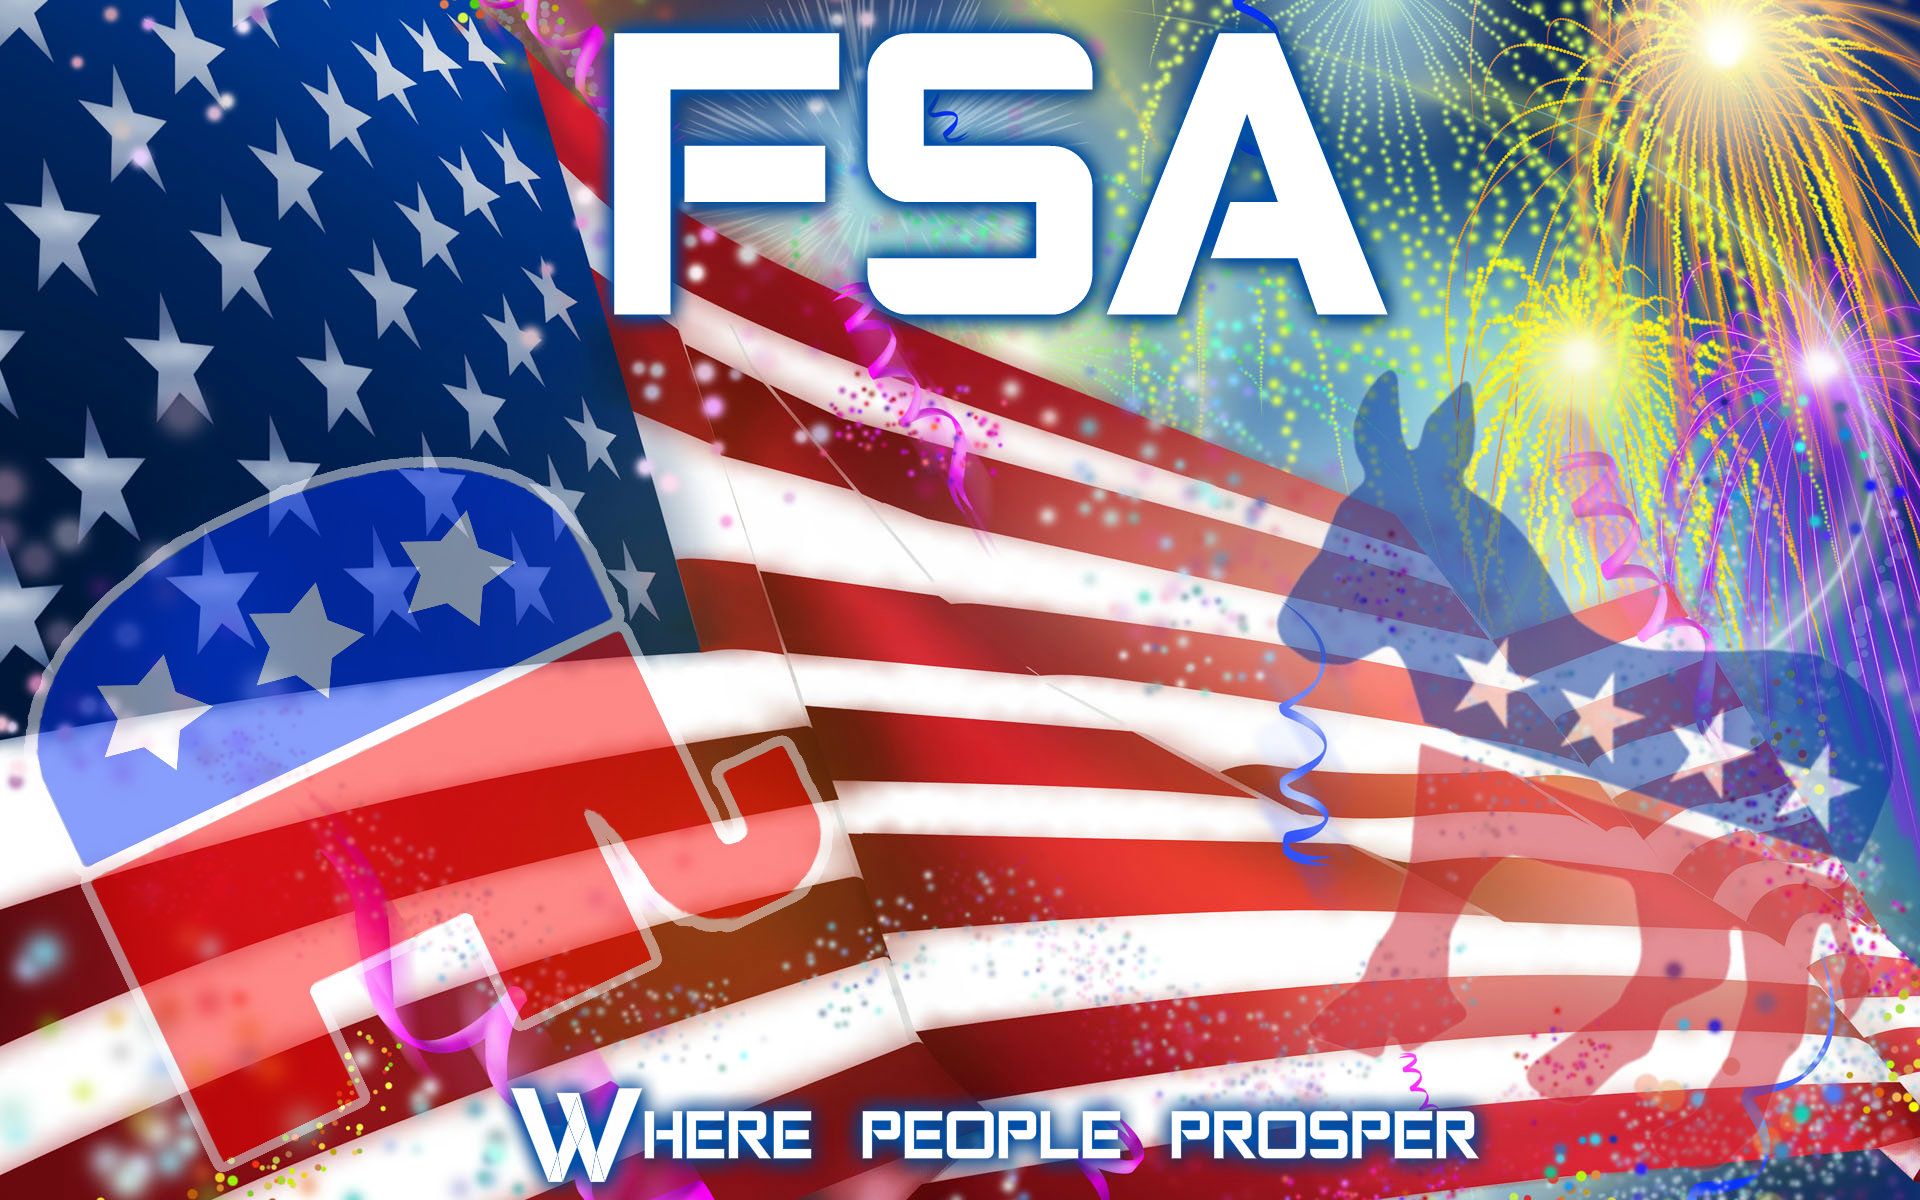 Fsa Logo Les Etats Unis Fan Art 36532770 Fanpop